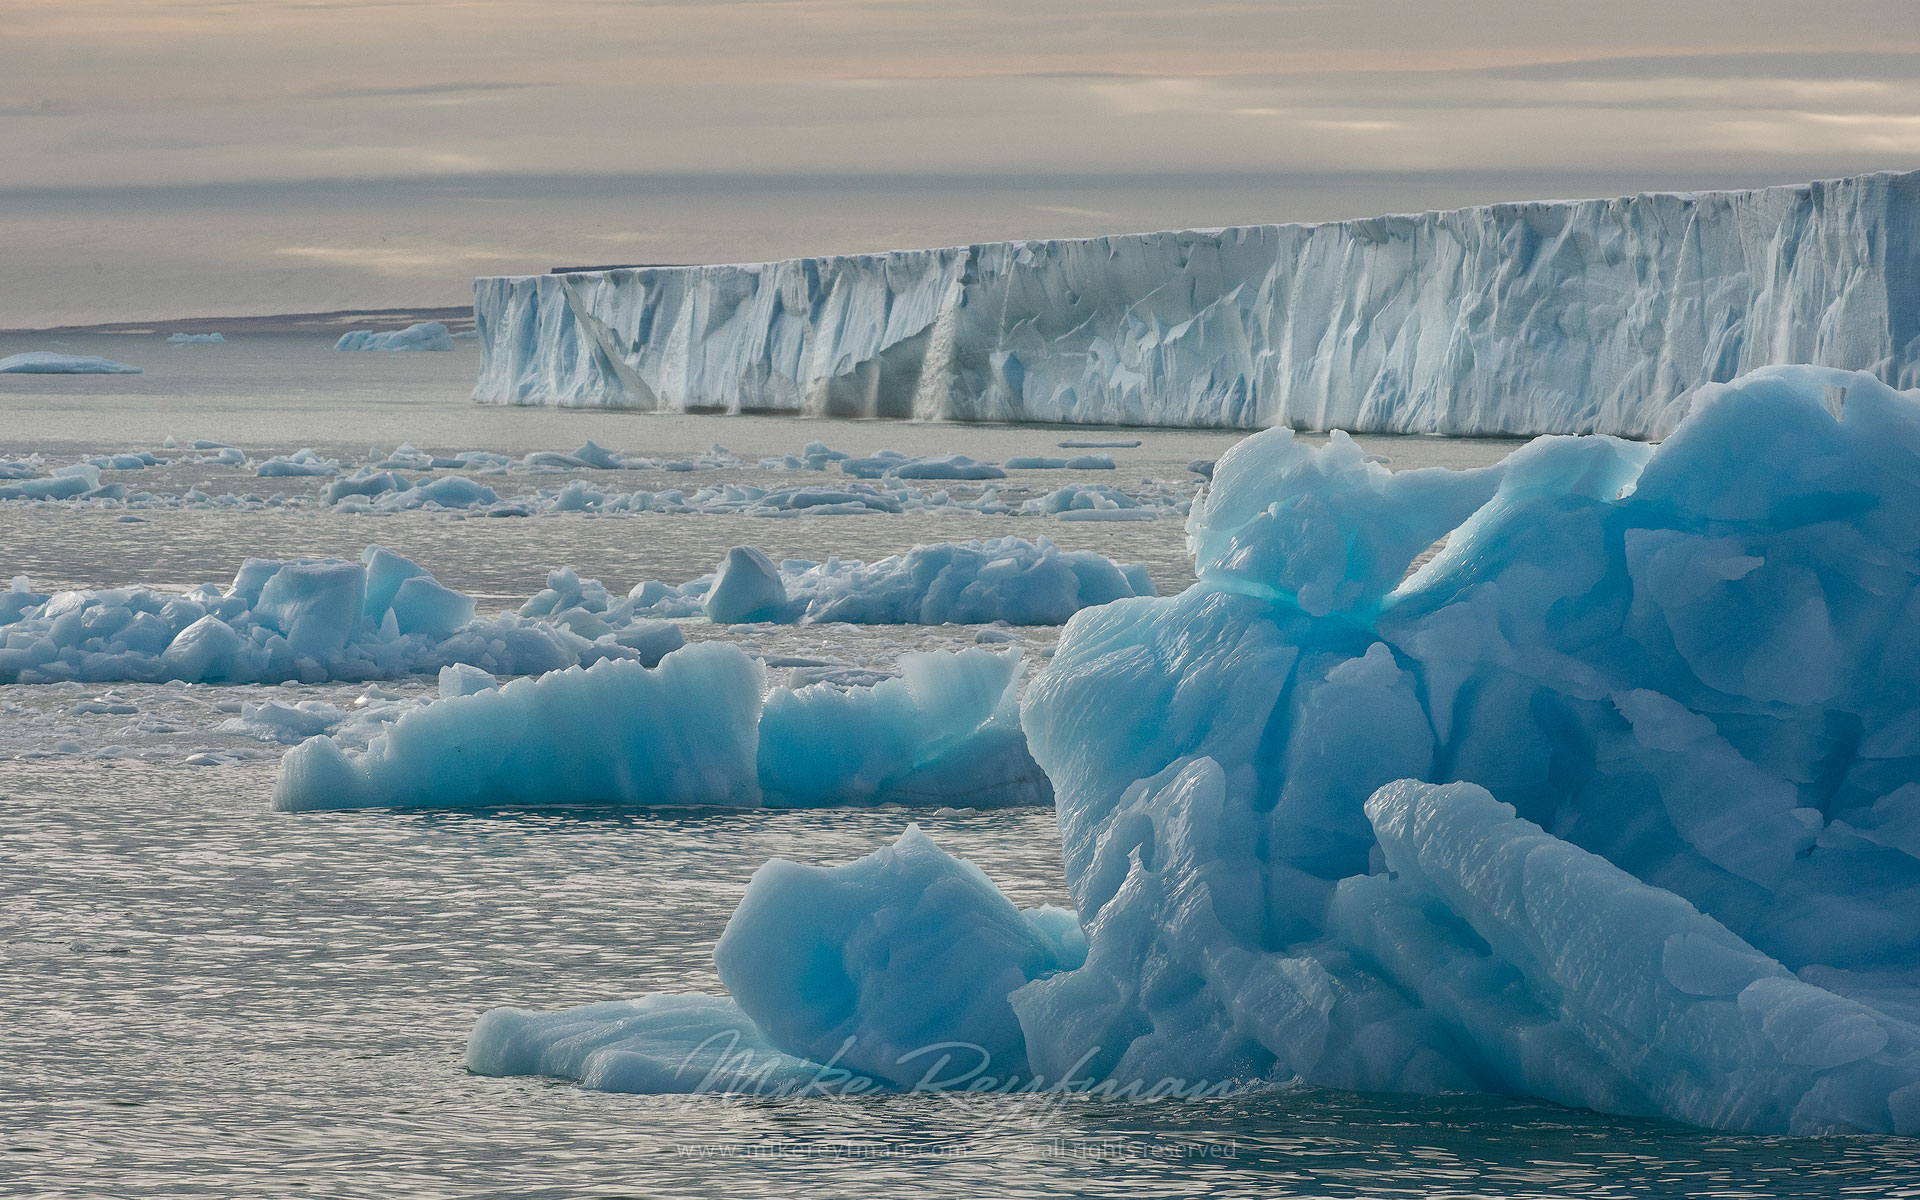 Icebergs with Austfonna Glacier on the background. Austfonna Ice Cap, Nordaustlandet Island, Svalbard (Spitsbergen) Archipelago, Norway. - Arctic-Landscape-Svalbard-Spitsbergen-Norway - Mike Reyfman Photography